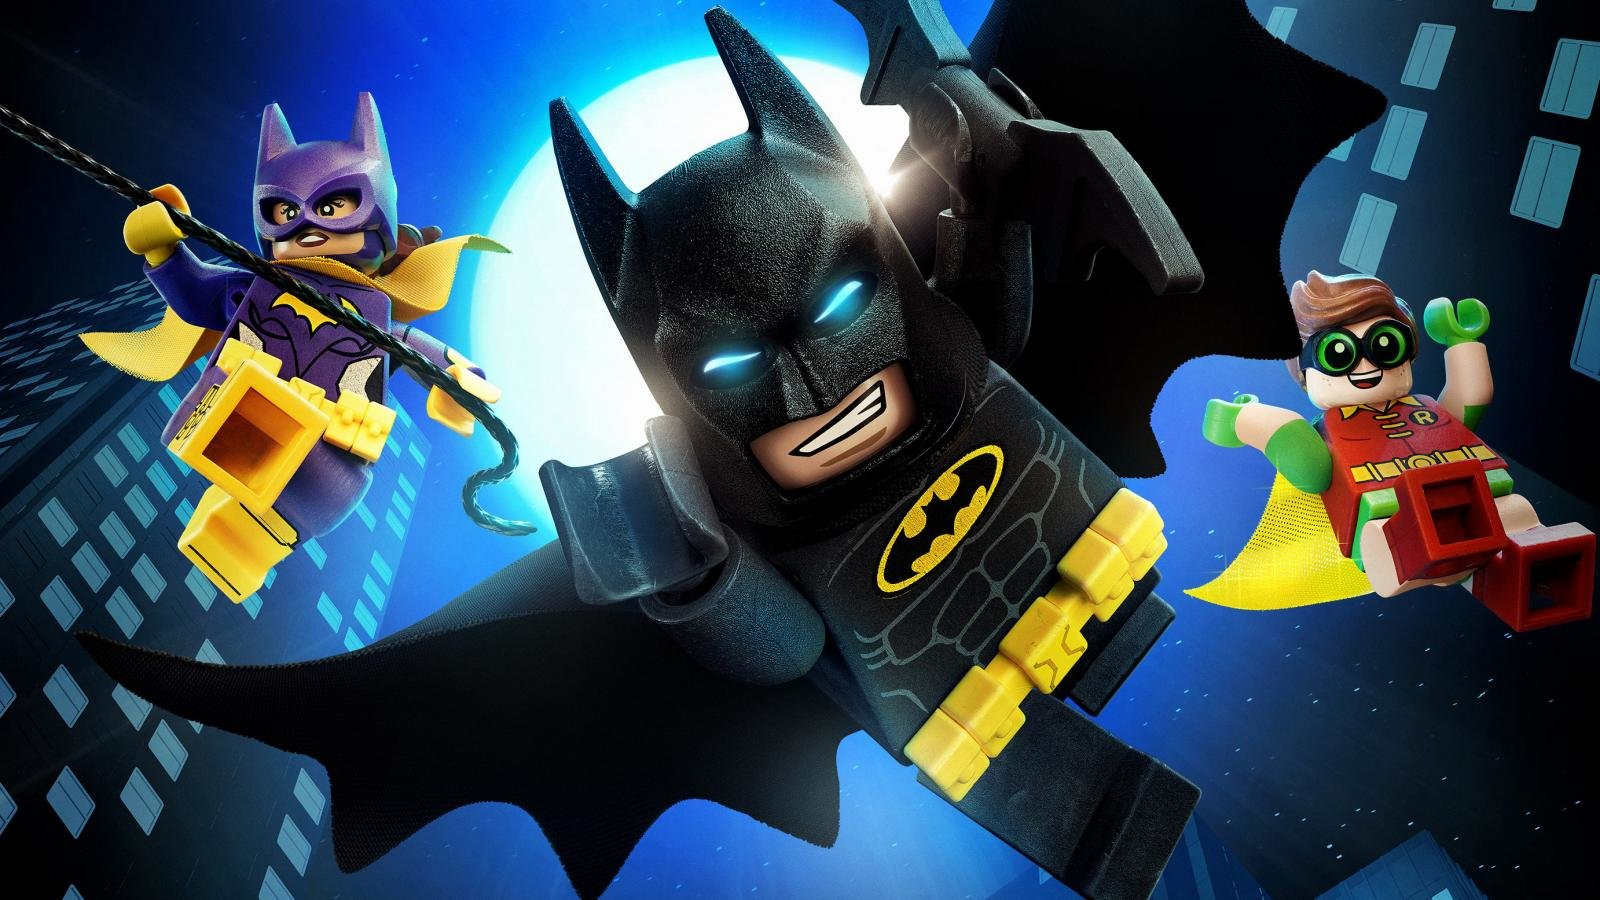 The Lego Movie Wallpapers 1600x900 Desktop Backgrounds